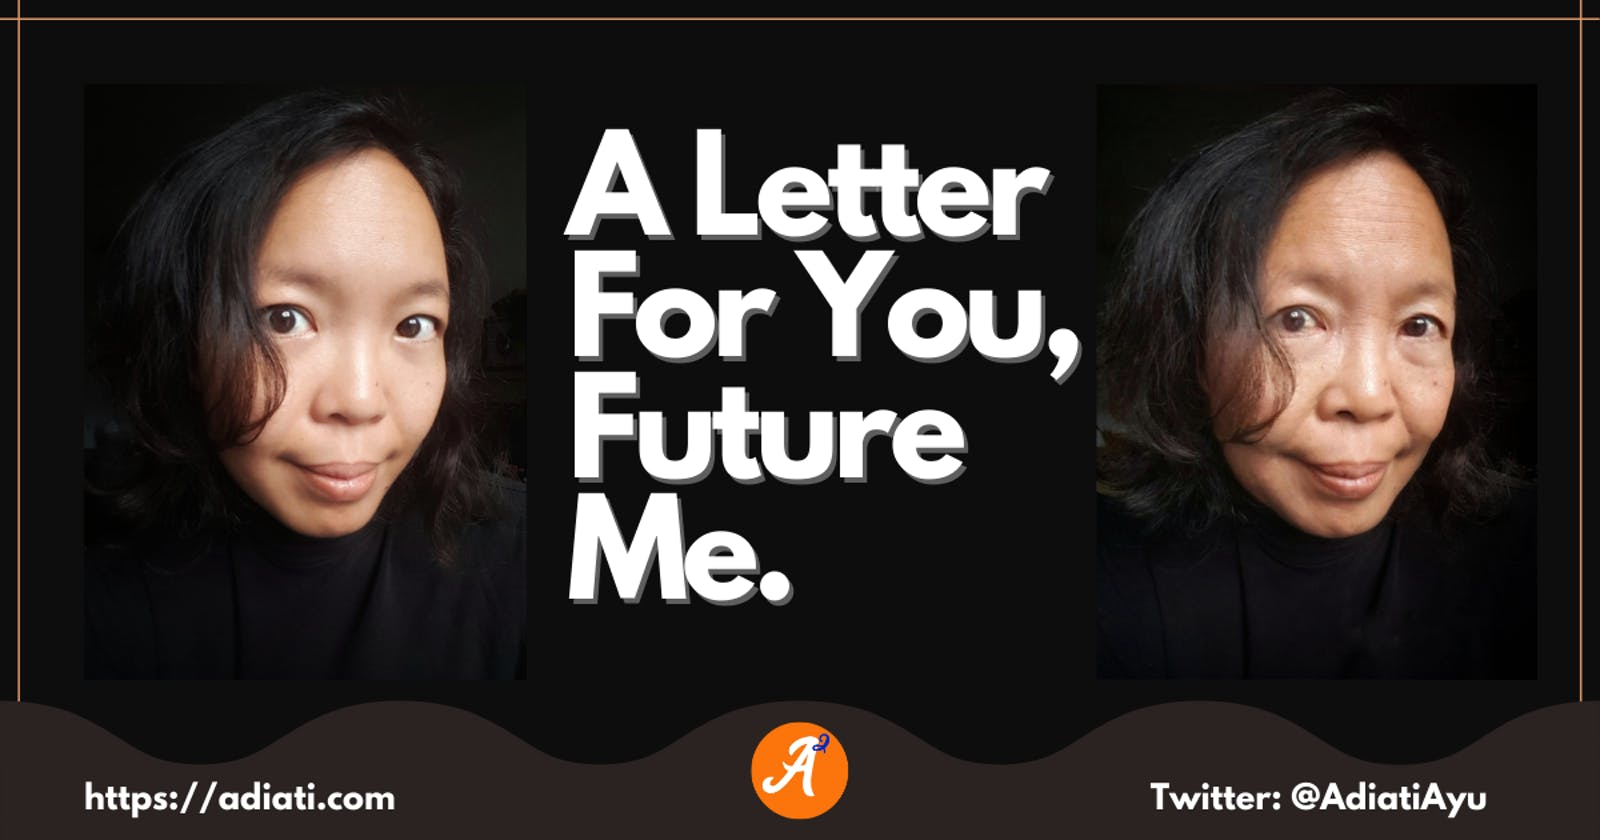 A Letter For You, Future Me.